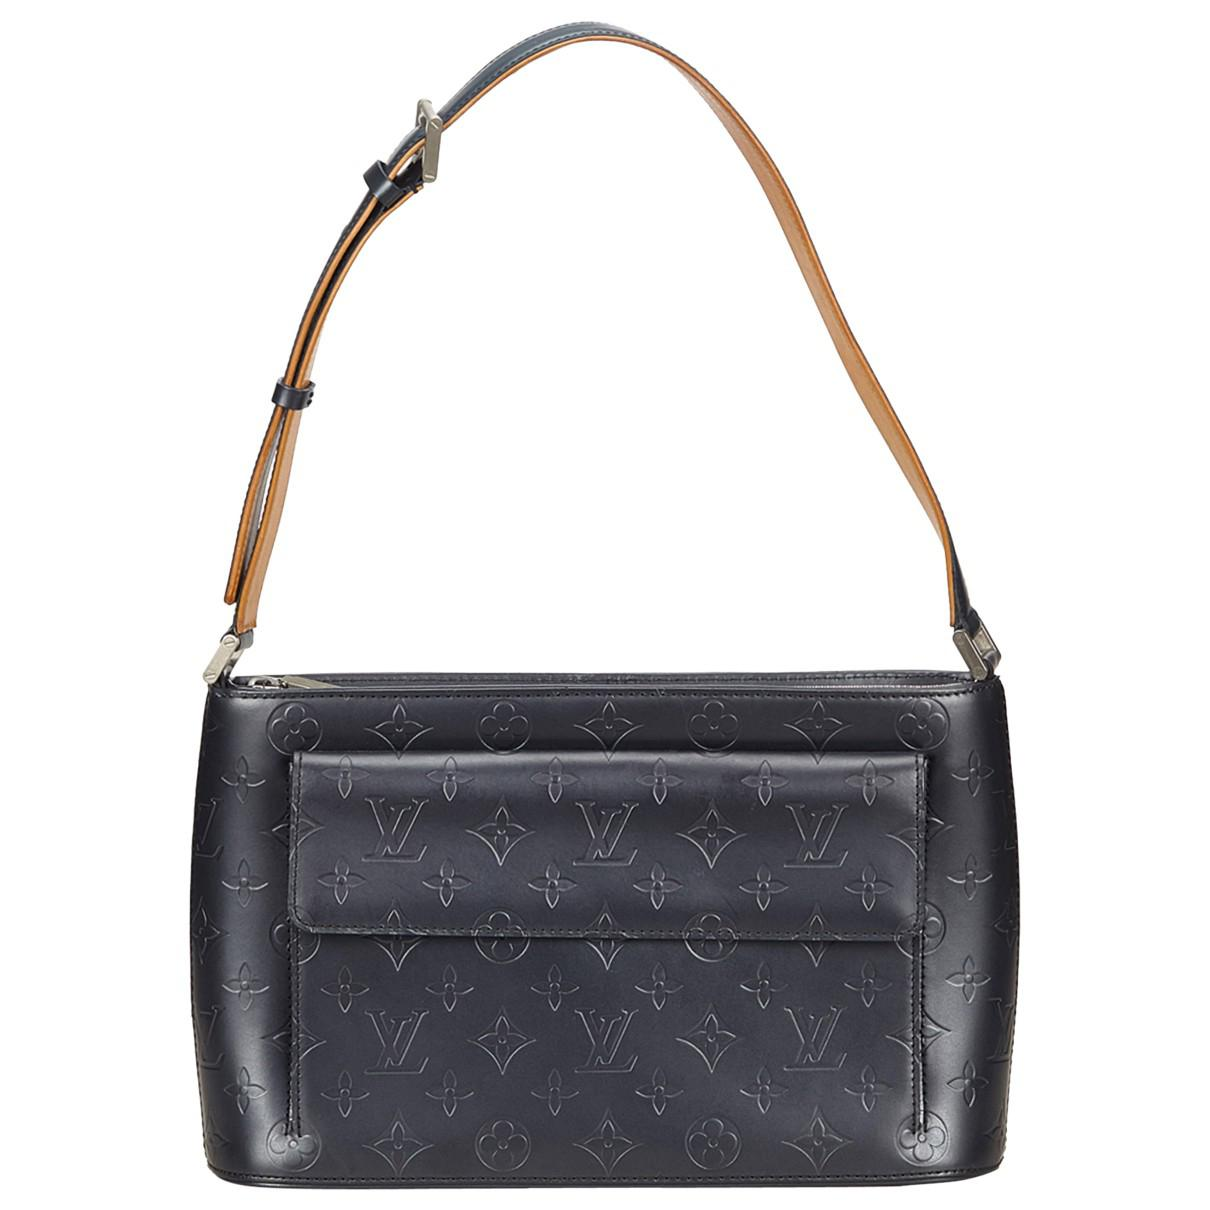 36e67566dc3b Lyst - Louis Vuitton Patent Leather Handbag in Black